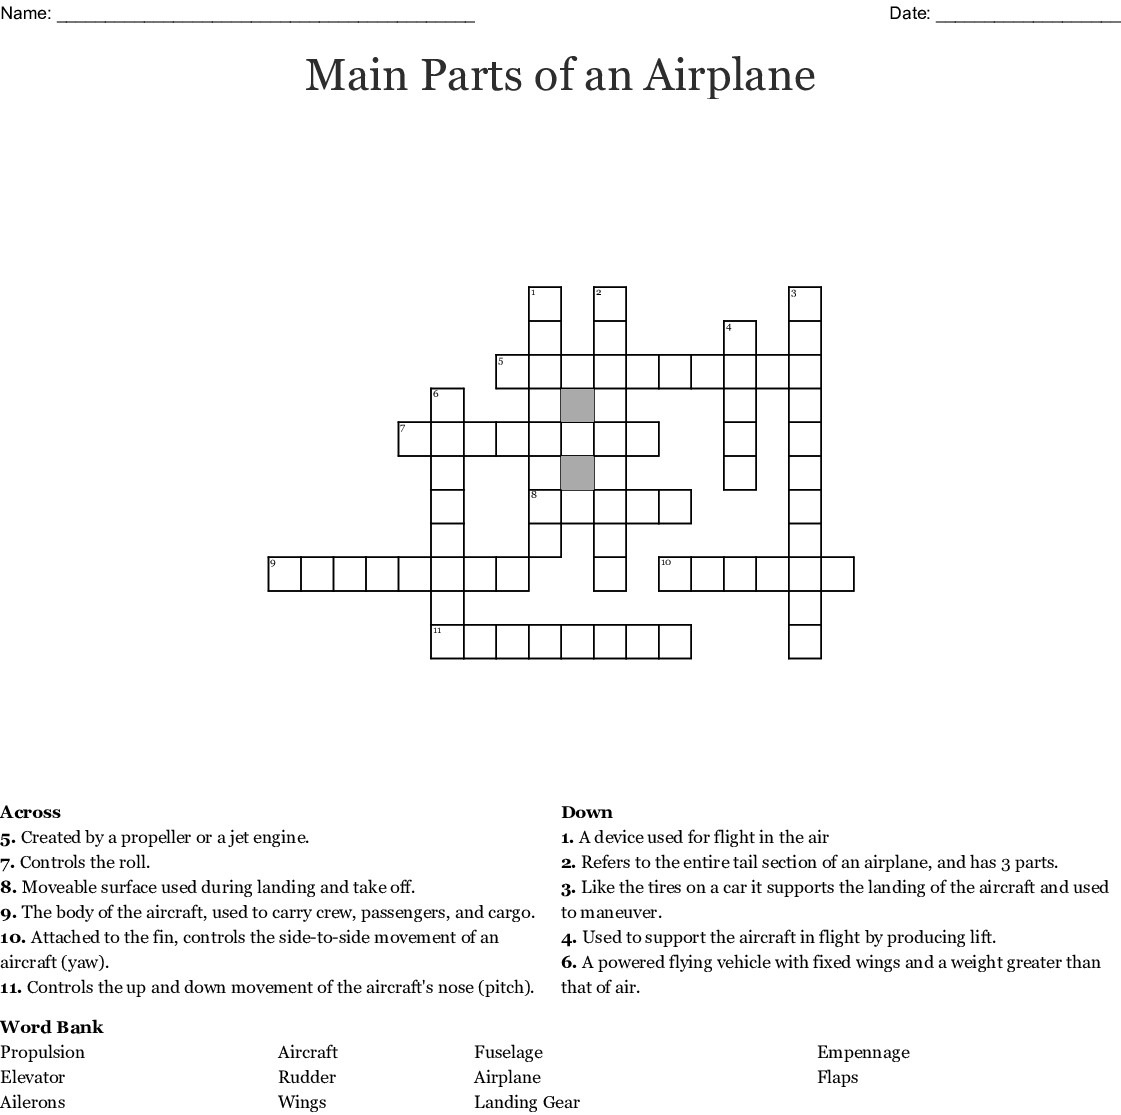 Main Parts Of An Airplane Crossword Wordmint